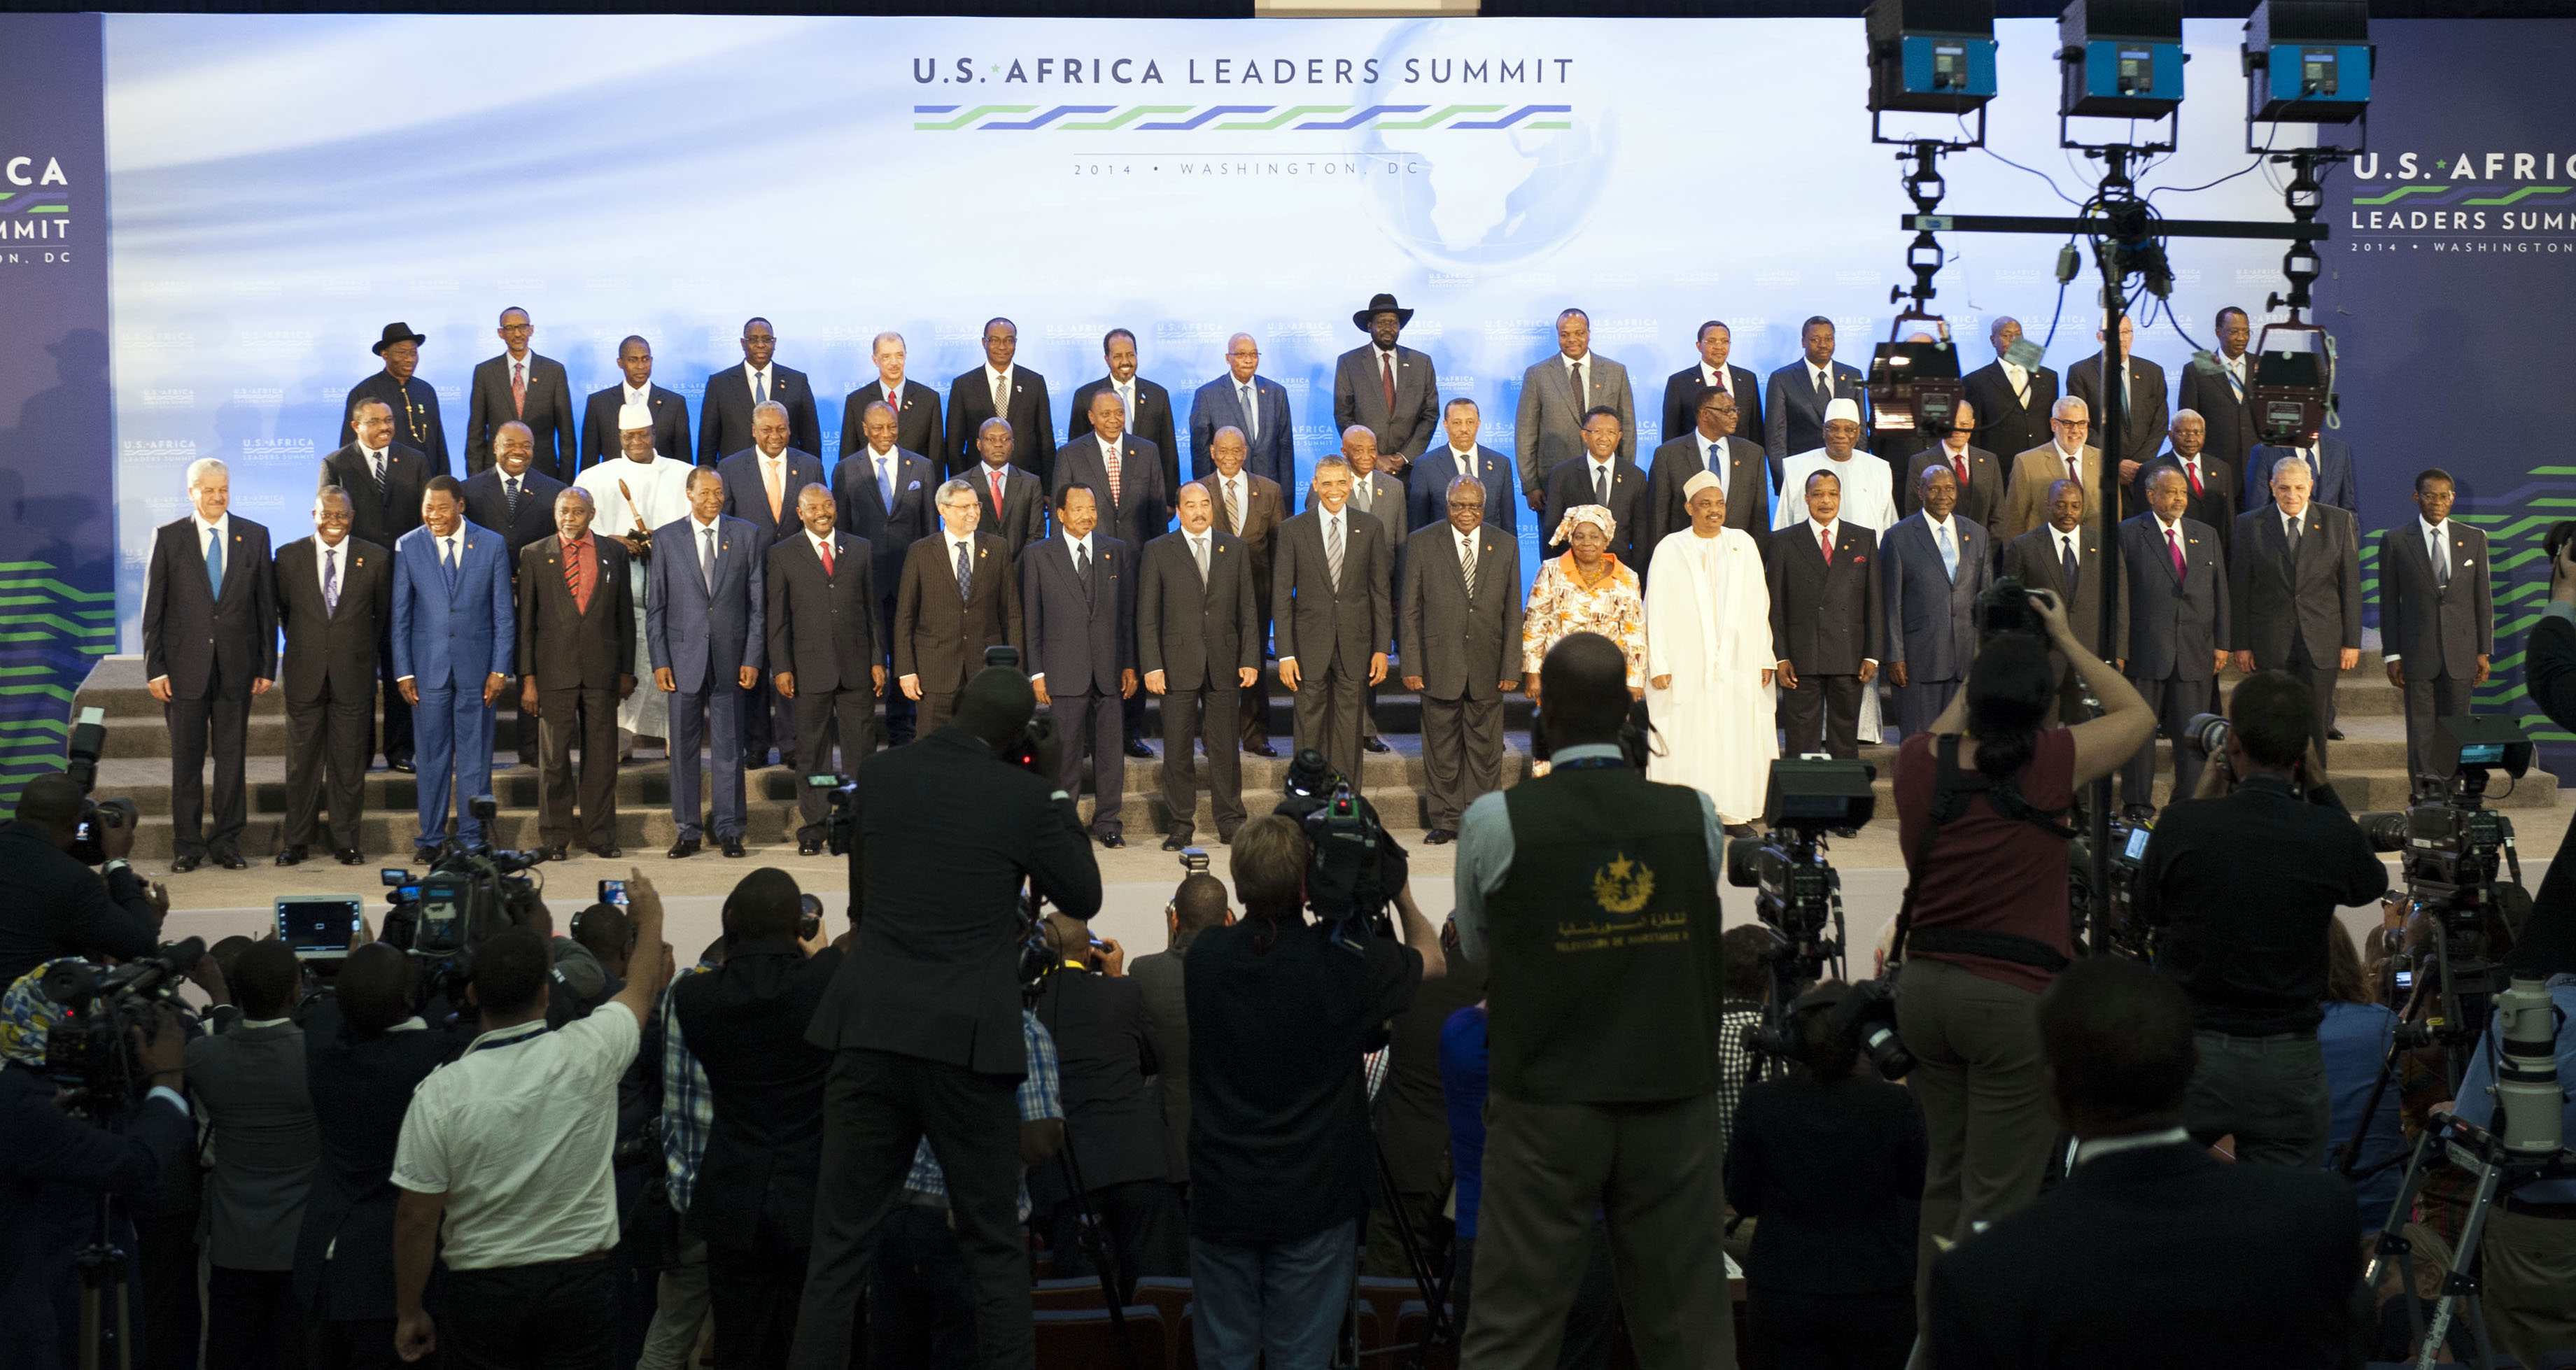 President_Obama_Participates_in_the_U.S.-Africa_Leaders_Summit_Family_Photo.jpg (3681×1958)